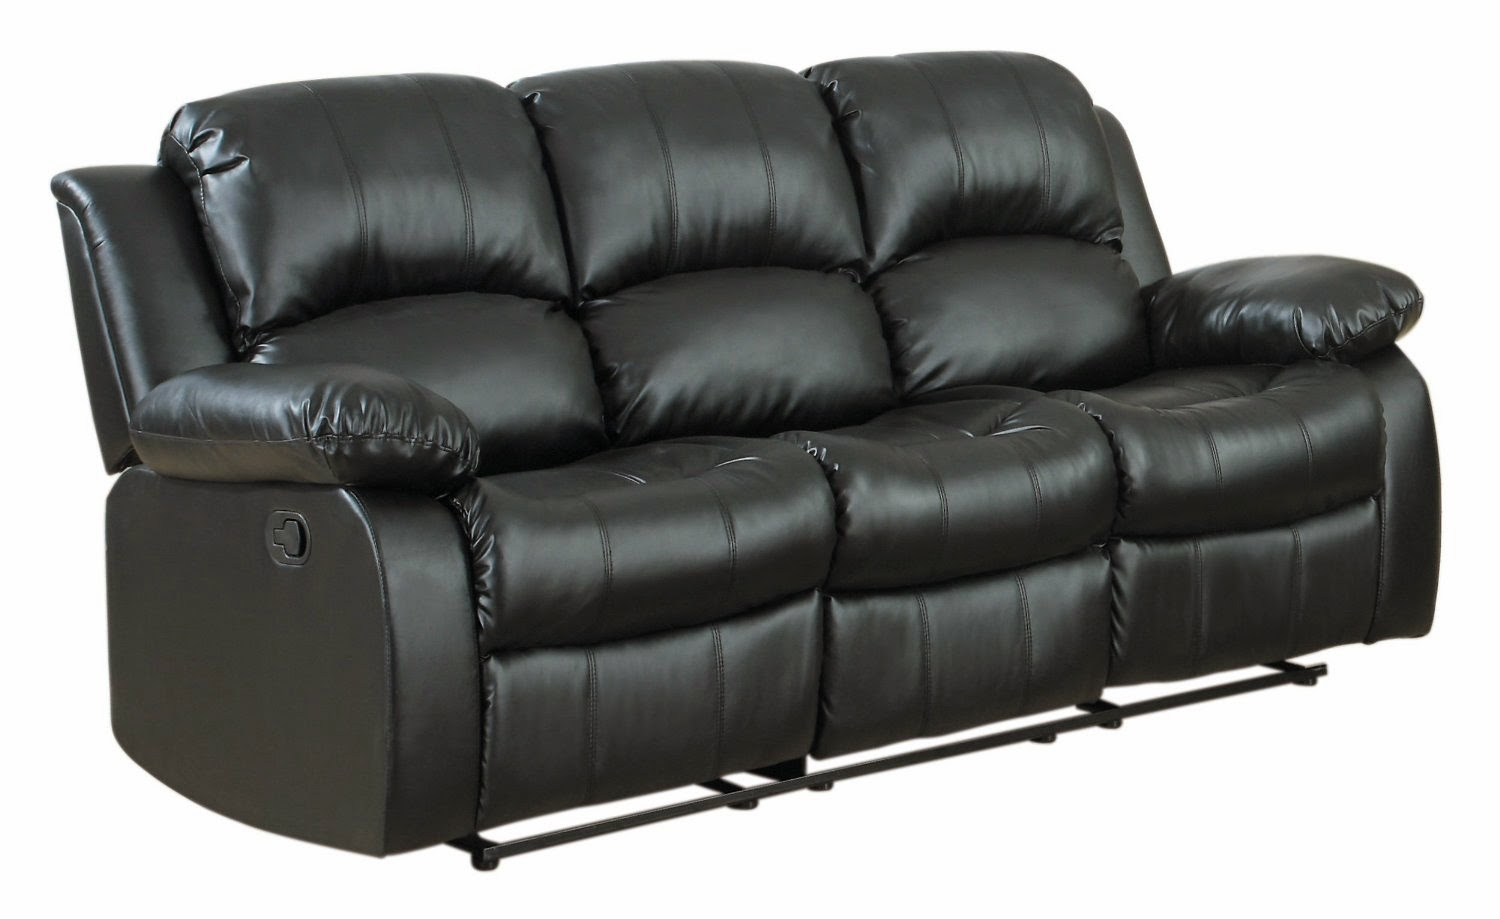 leather reclining couch and loveseat black leather reclining sofa